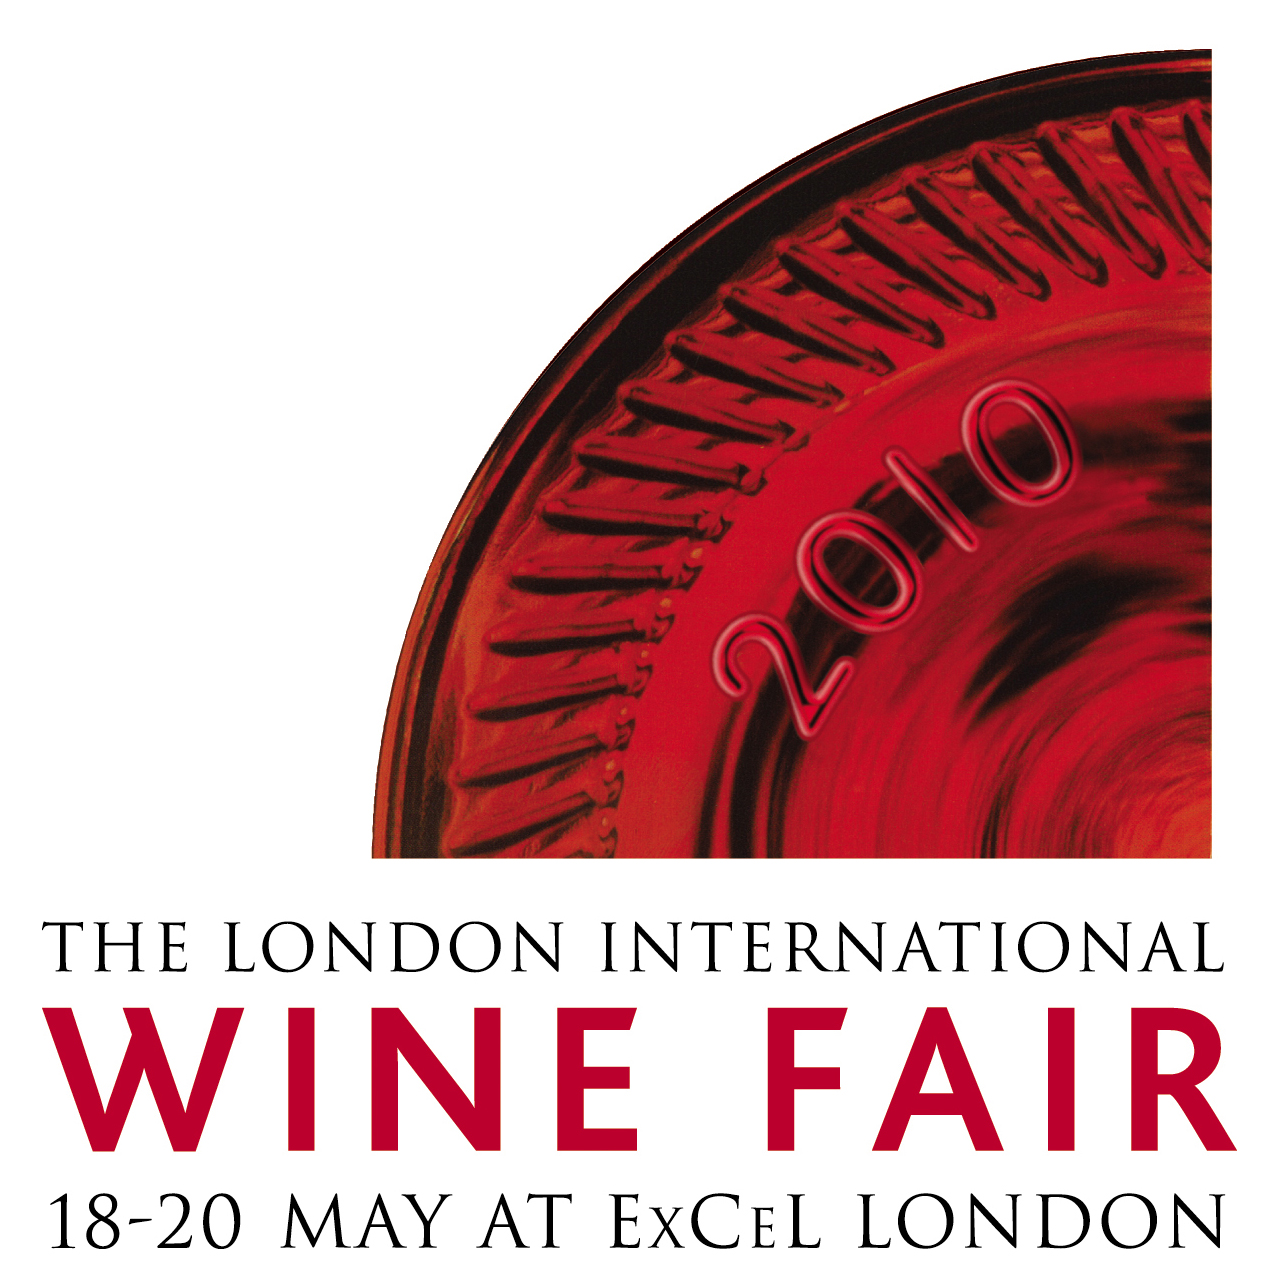 London int wine fair10 3